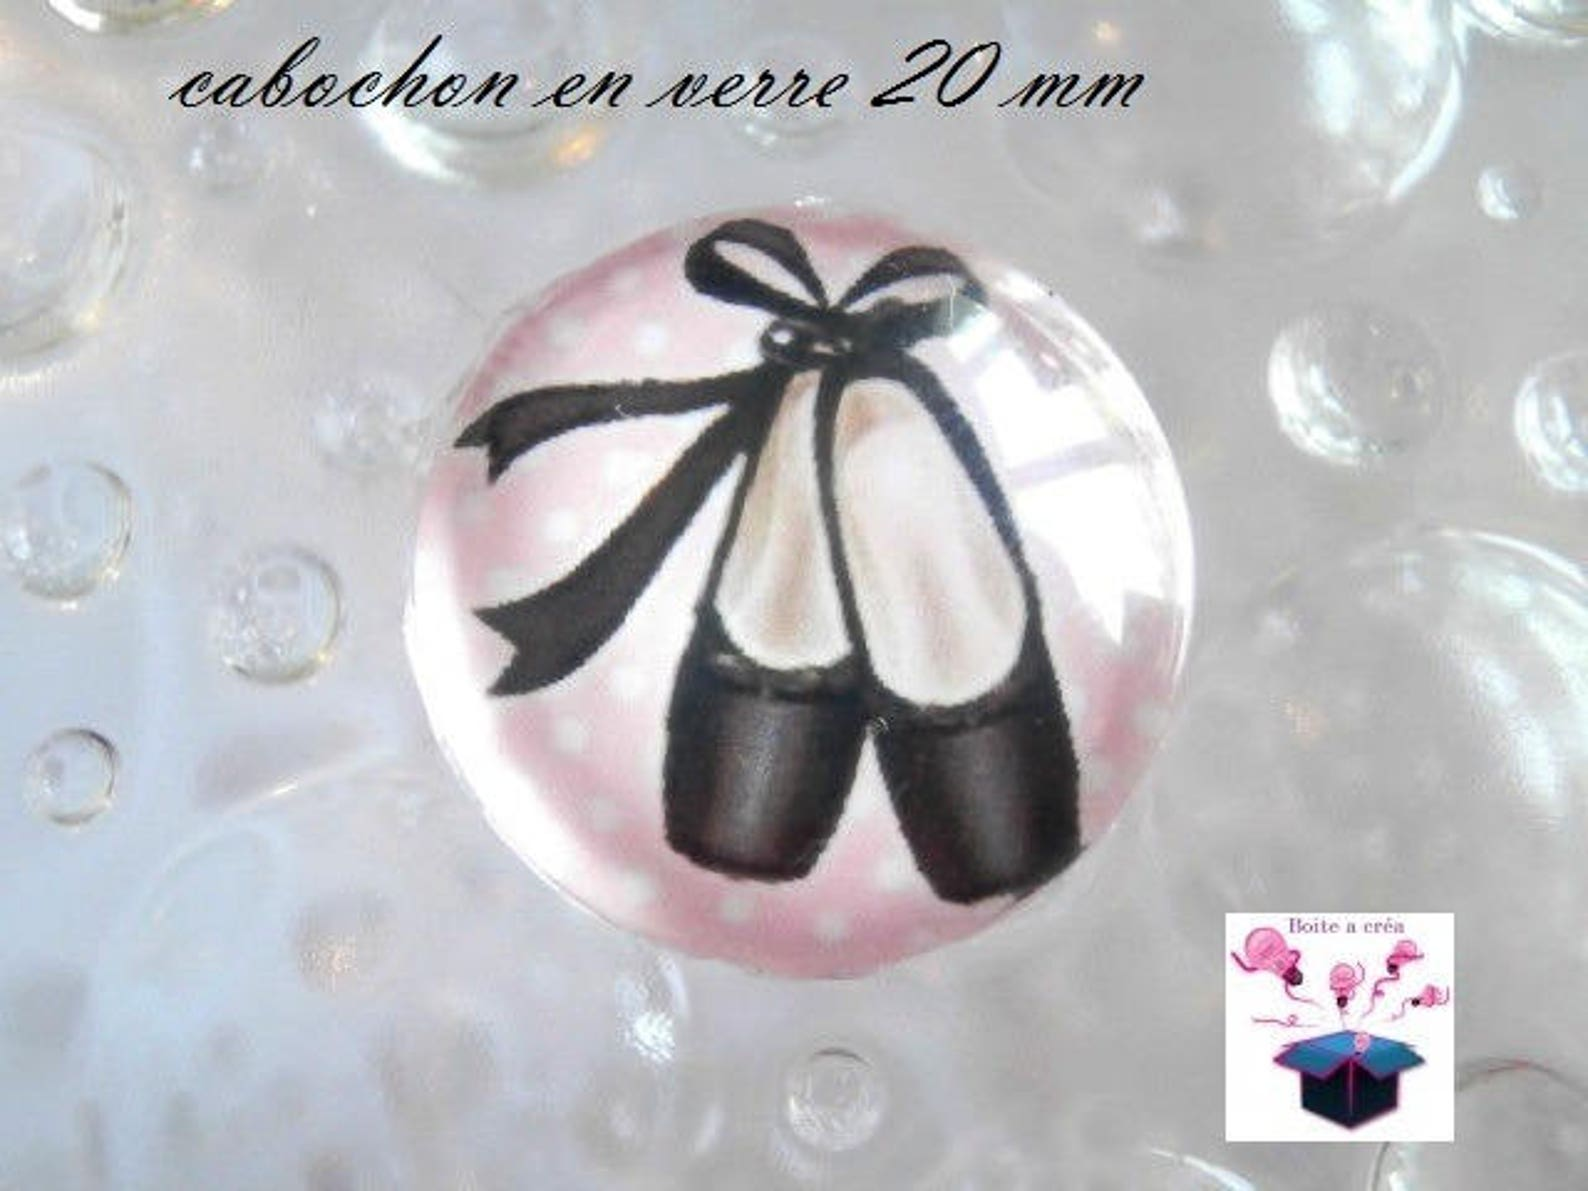 1 cabochon clear 20mm ballet shoe theme